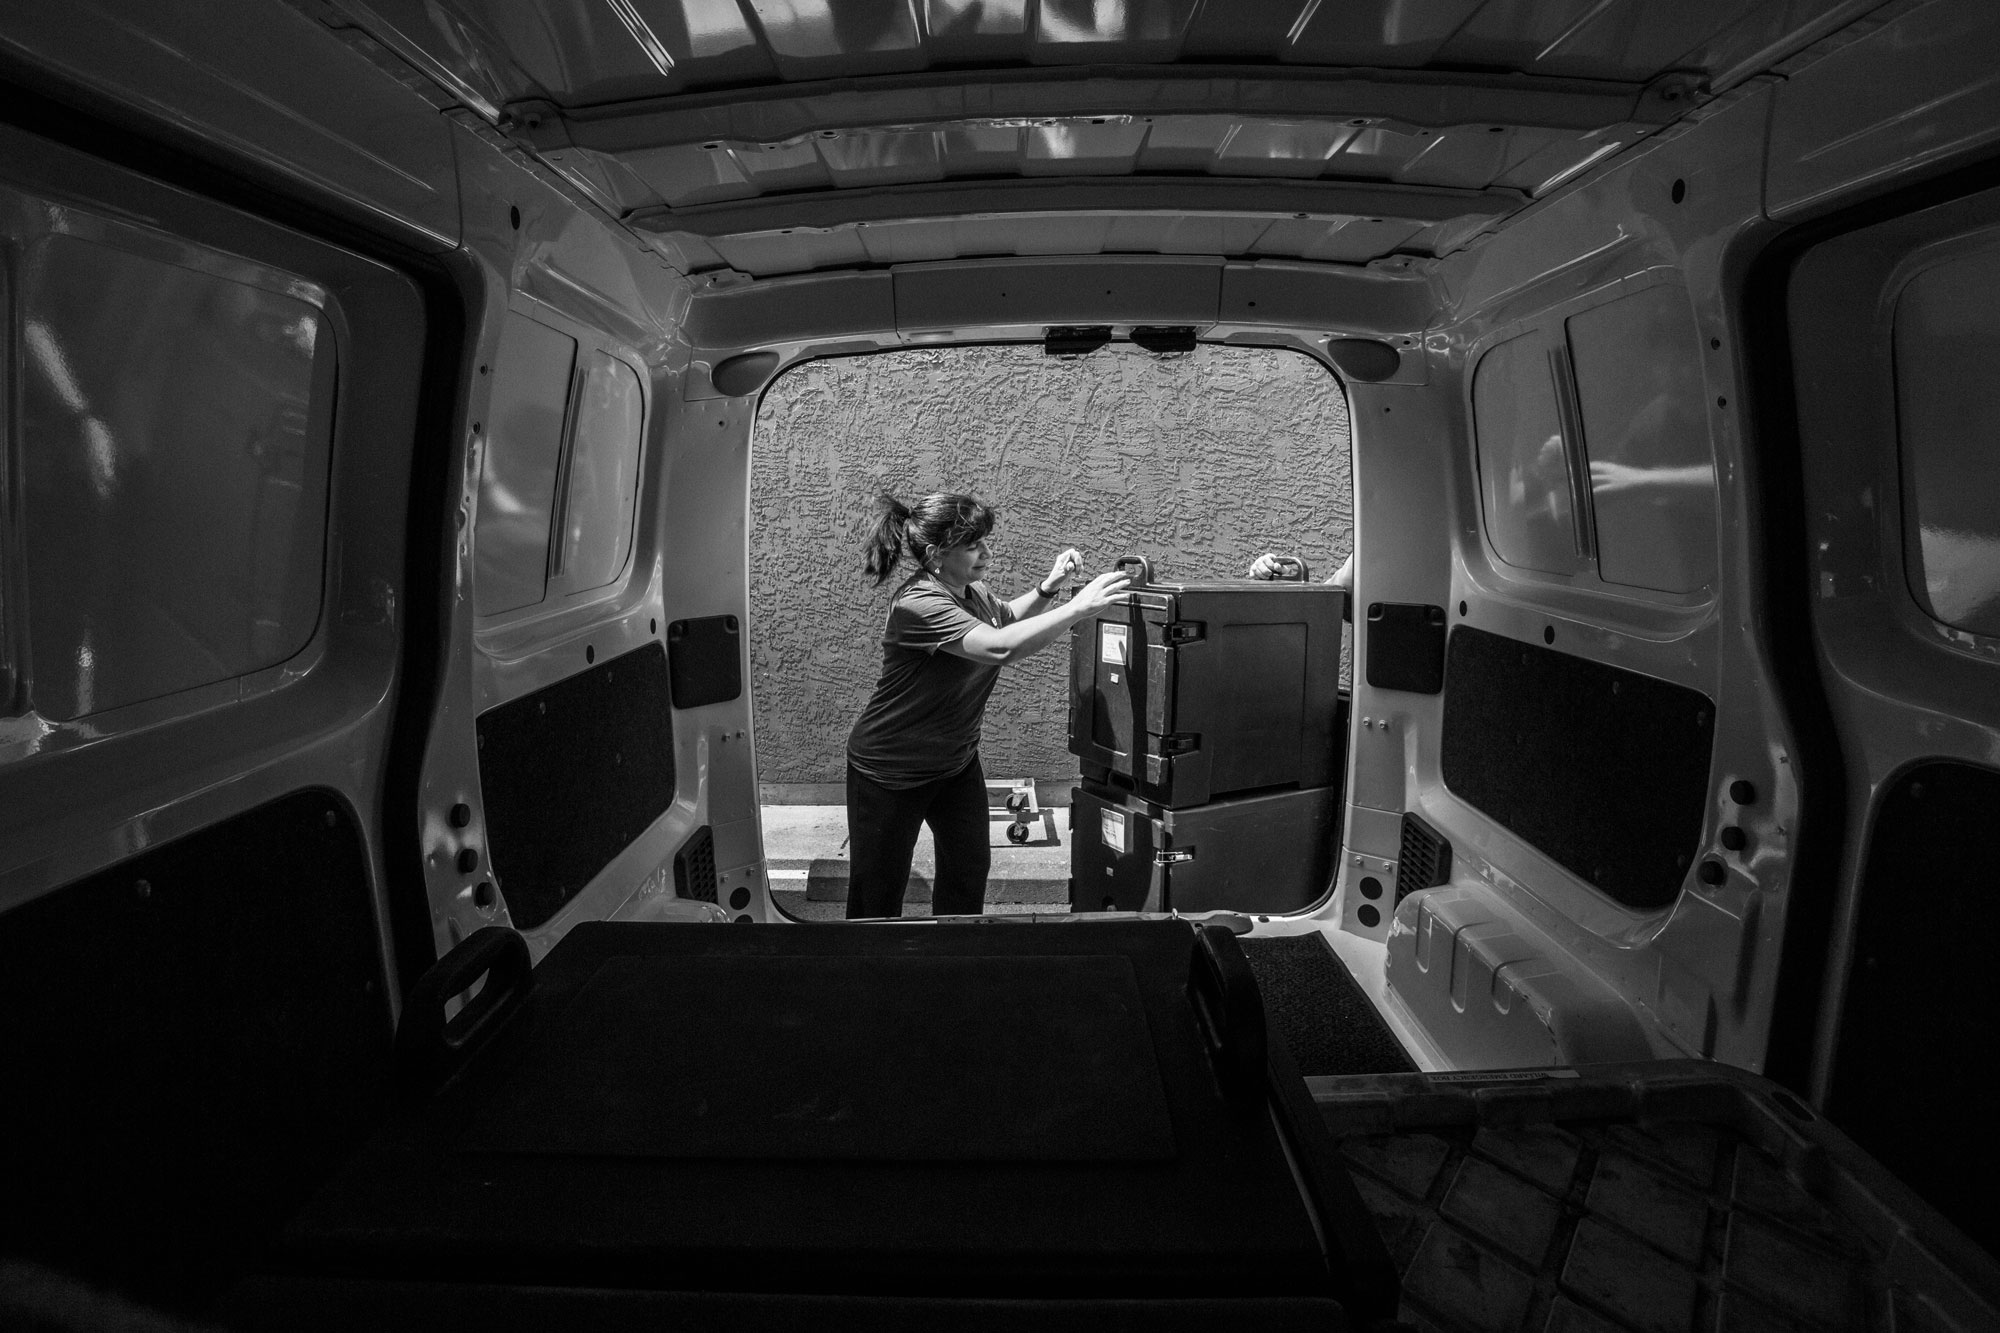 Team-TC-Loading-van-from-inside-bw.jpg